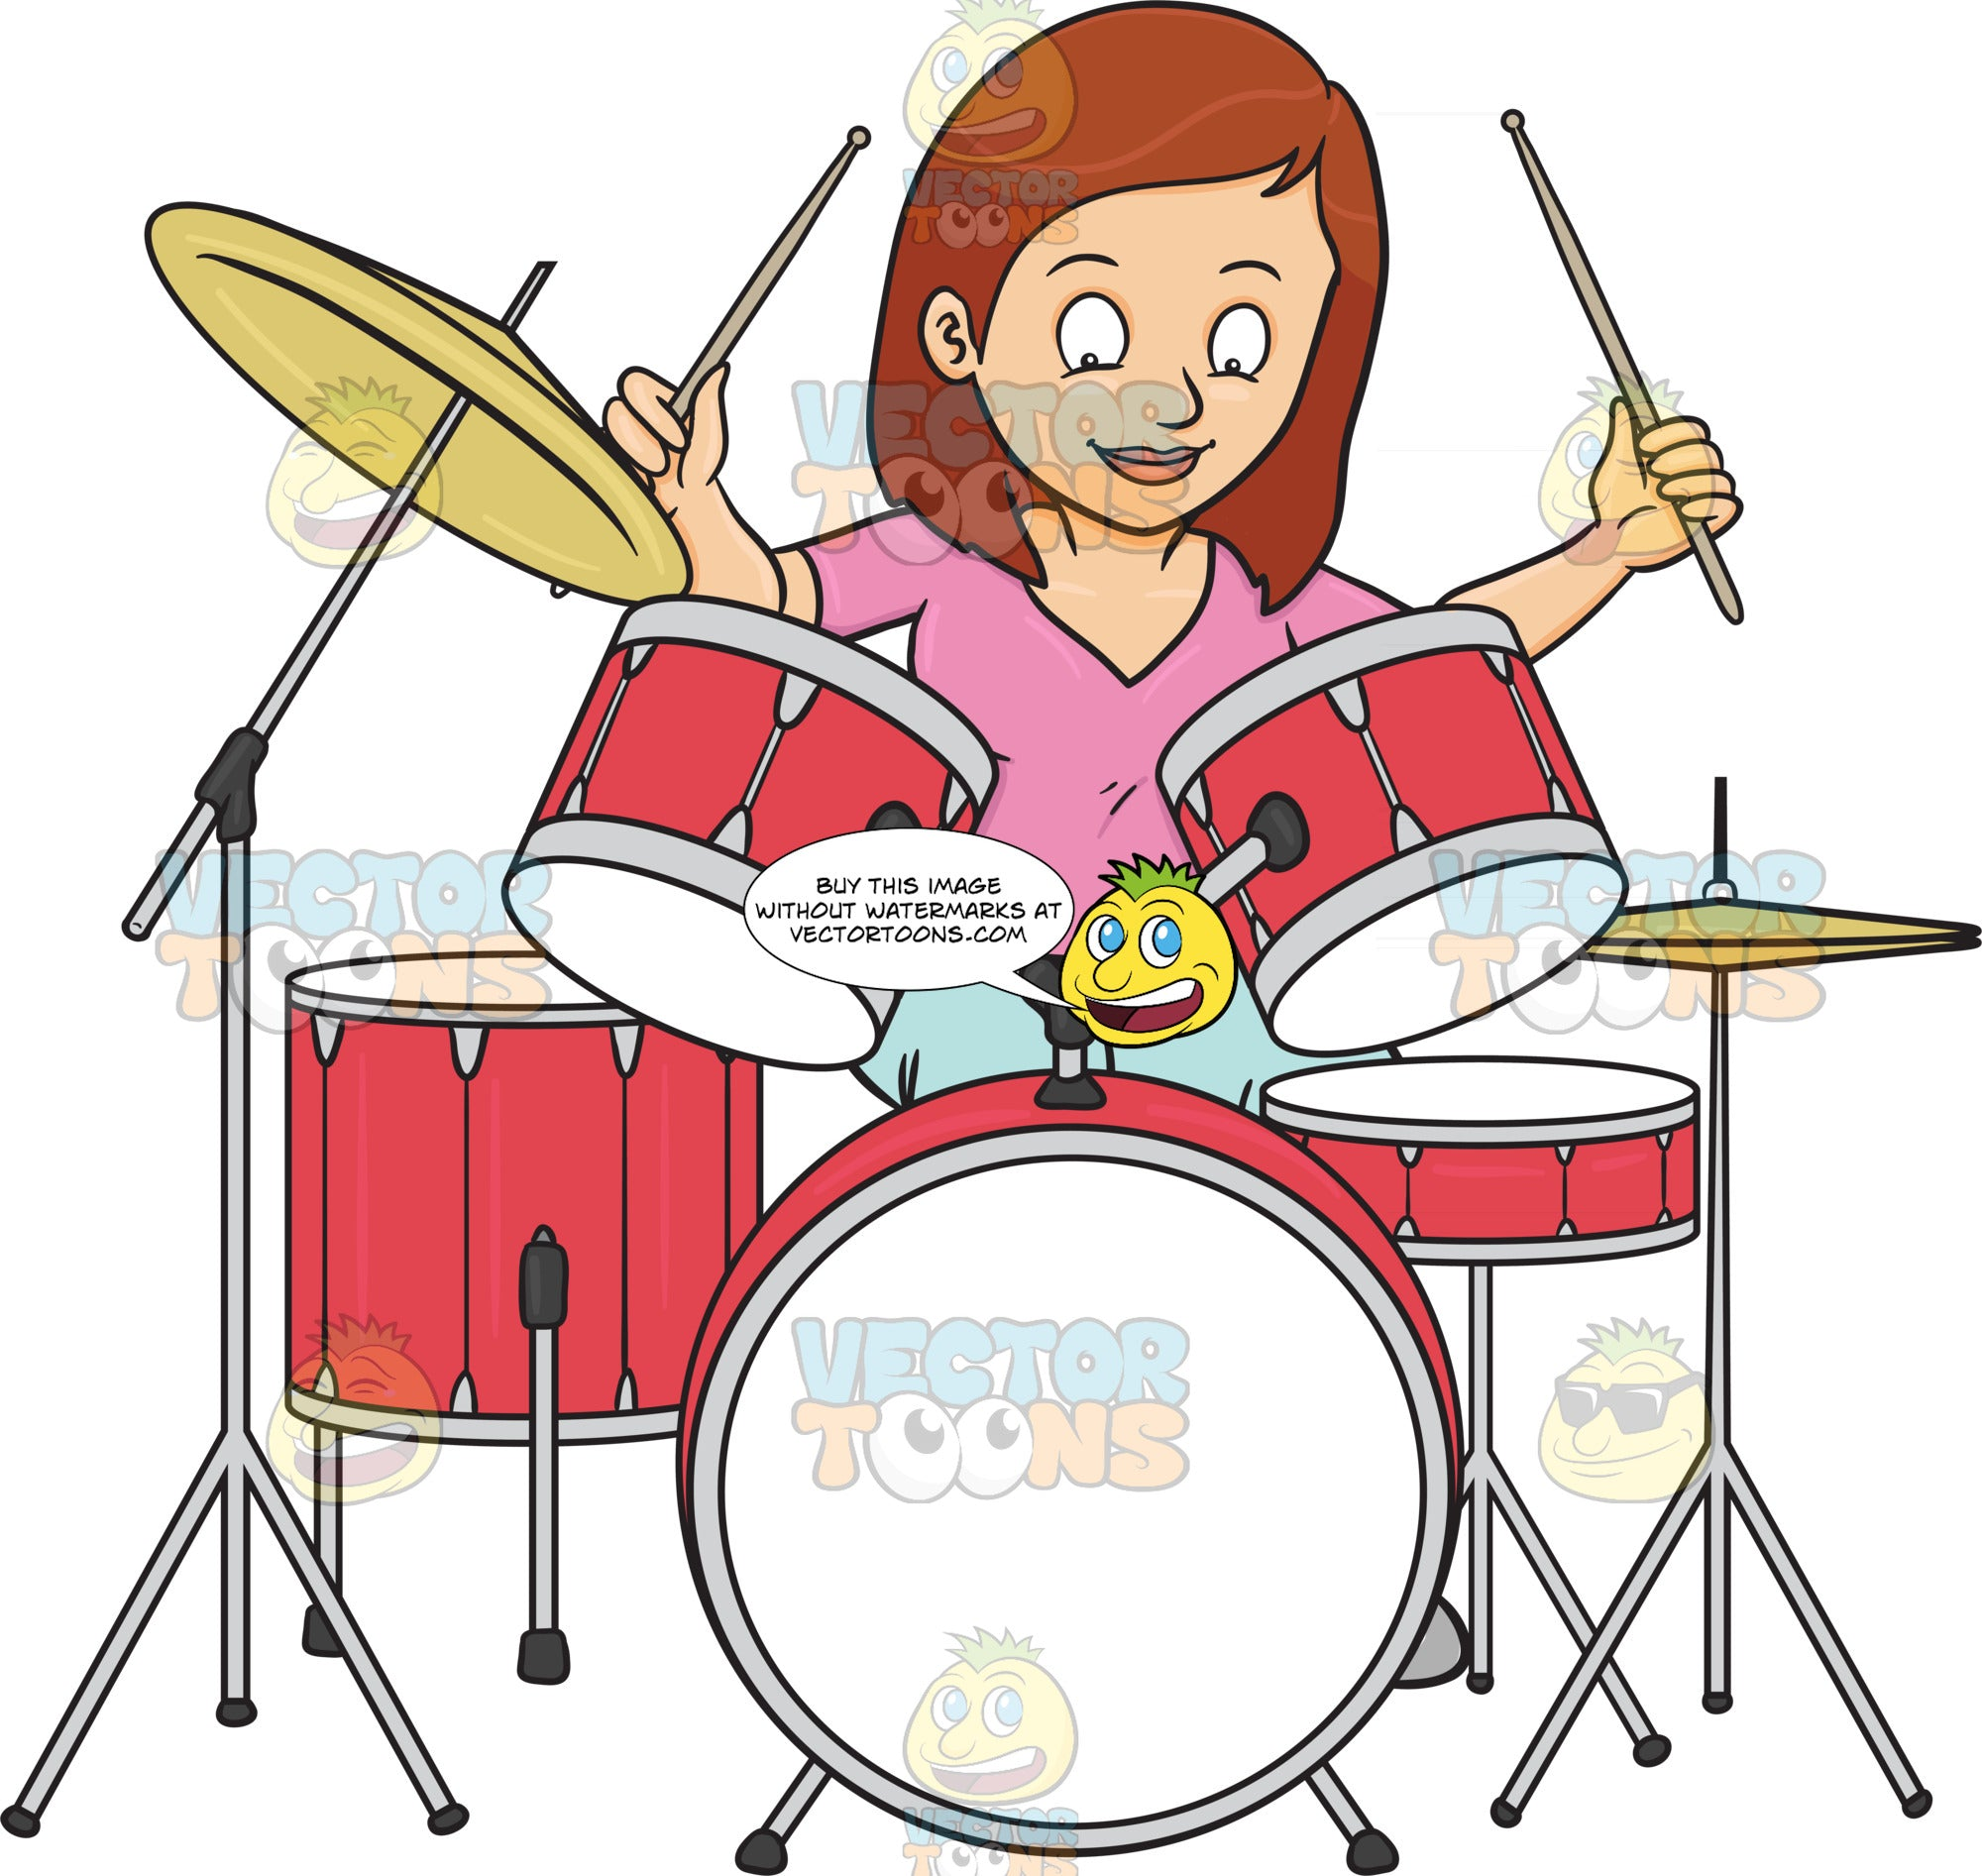 A Woman Smirks As She Begins To Hit The Drums With Drumsticks